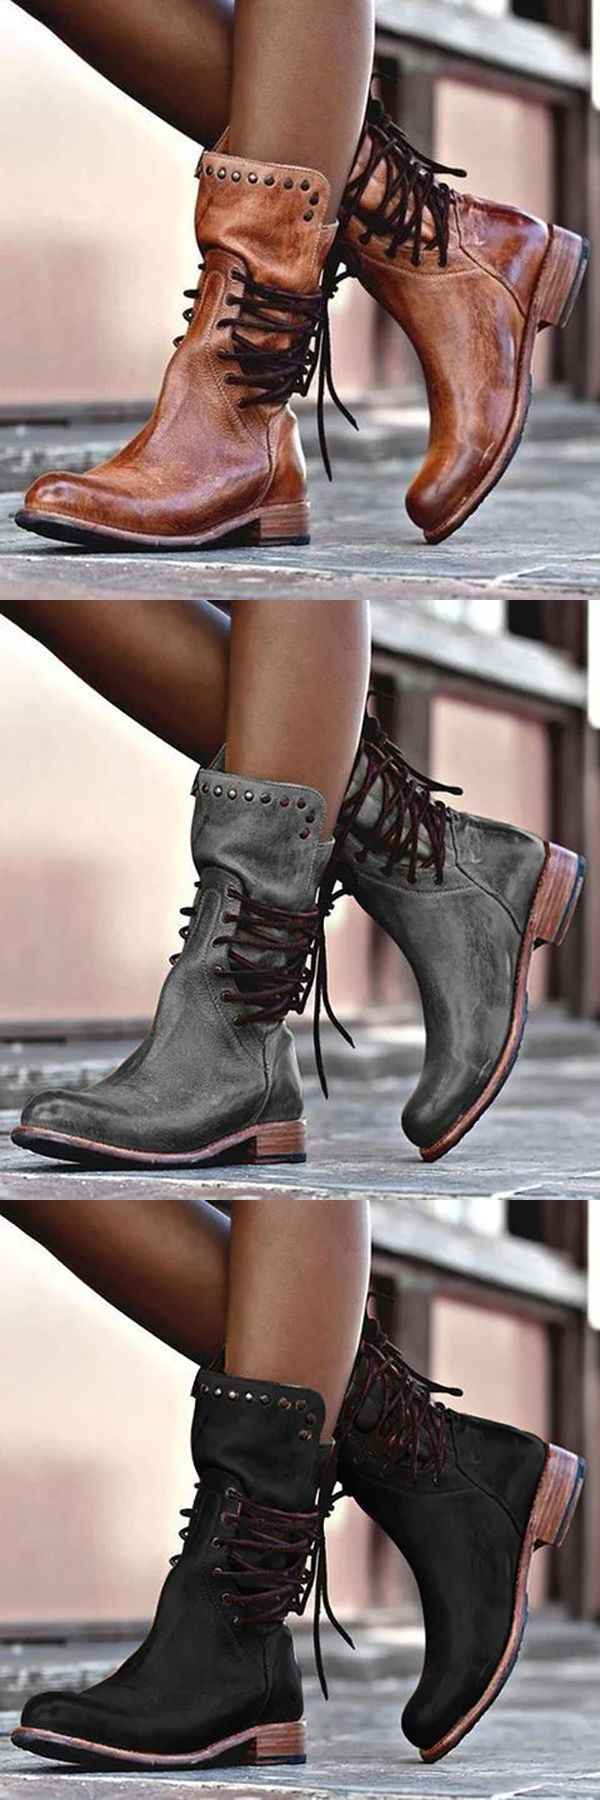 SALE – 60% OFF FASHION BOOTS, PICK YOUR STYLE! #fall outfit shoes